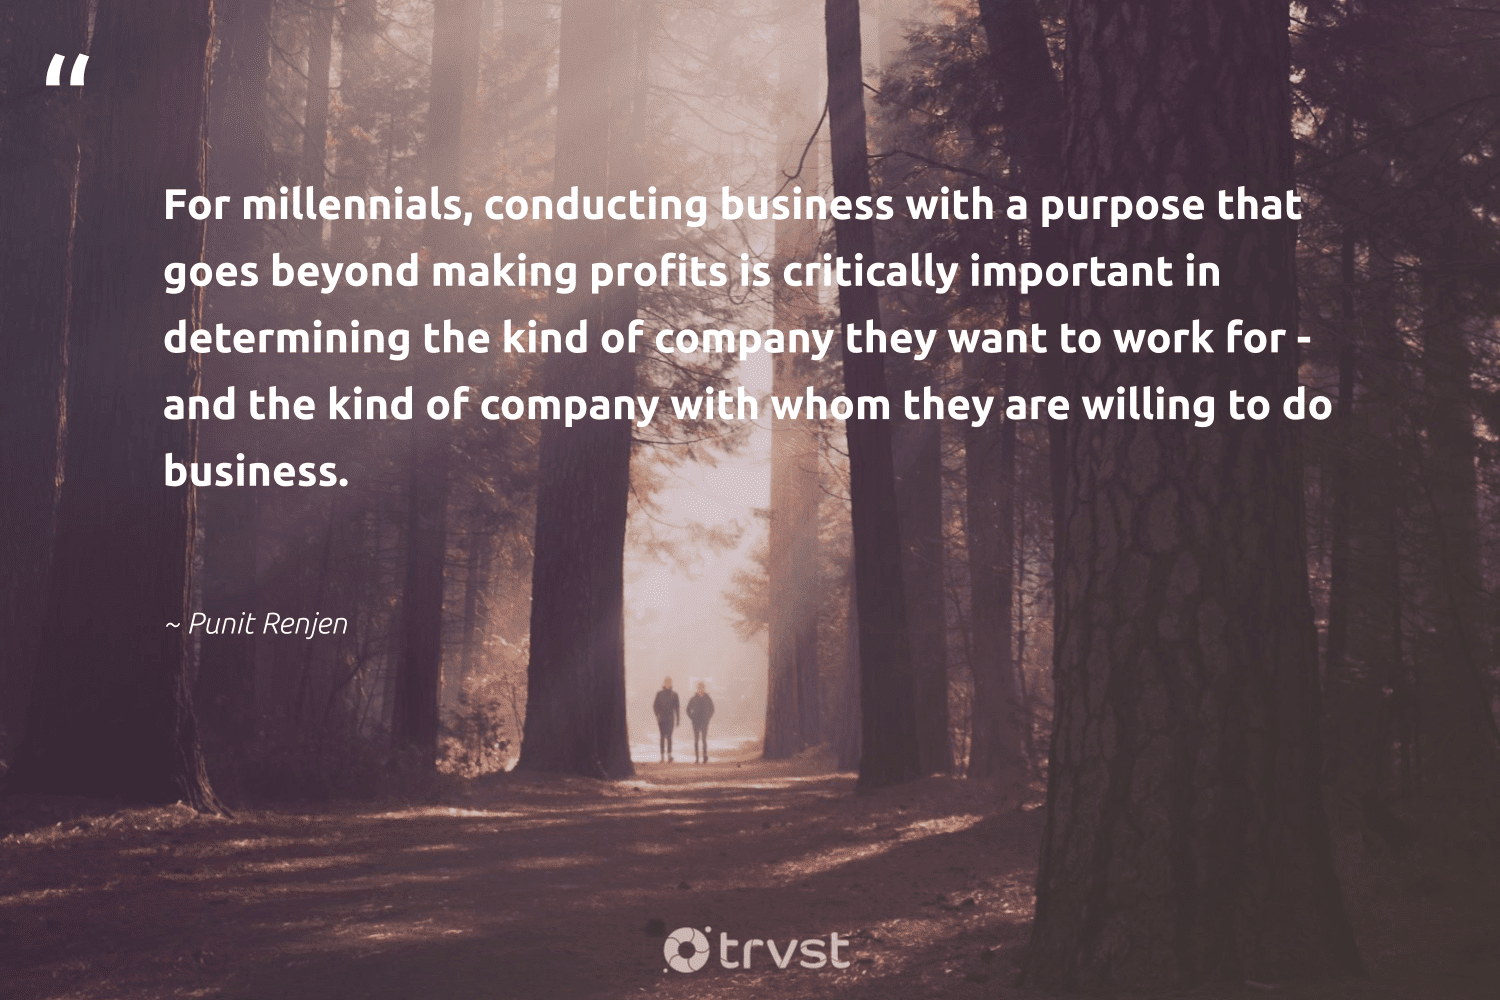 """""""For millennials, conducting business with a purpose that goes beyond making profits is critically important in determining the kind of company they want to work for - and the kind of company with whom they are willing to do business.""""  - Punit Renjen #trvst #quotes #purpose #findpurpose #begreat #mindset #dotherightthing #purposedriven #softskills #changemakers #dosomething #findingpupose"""